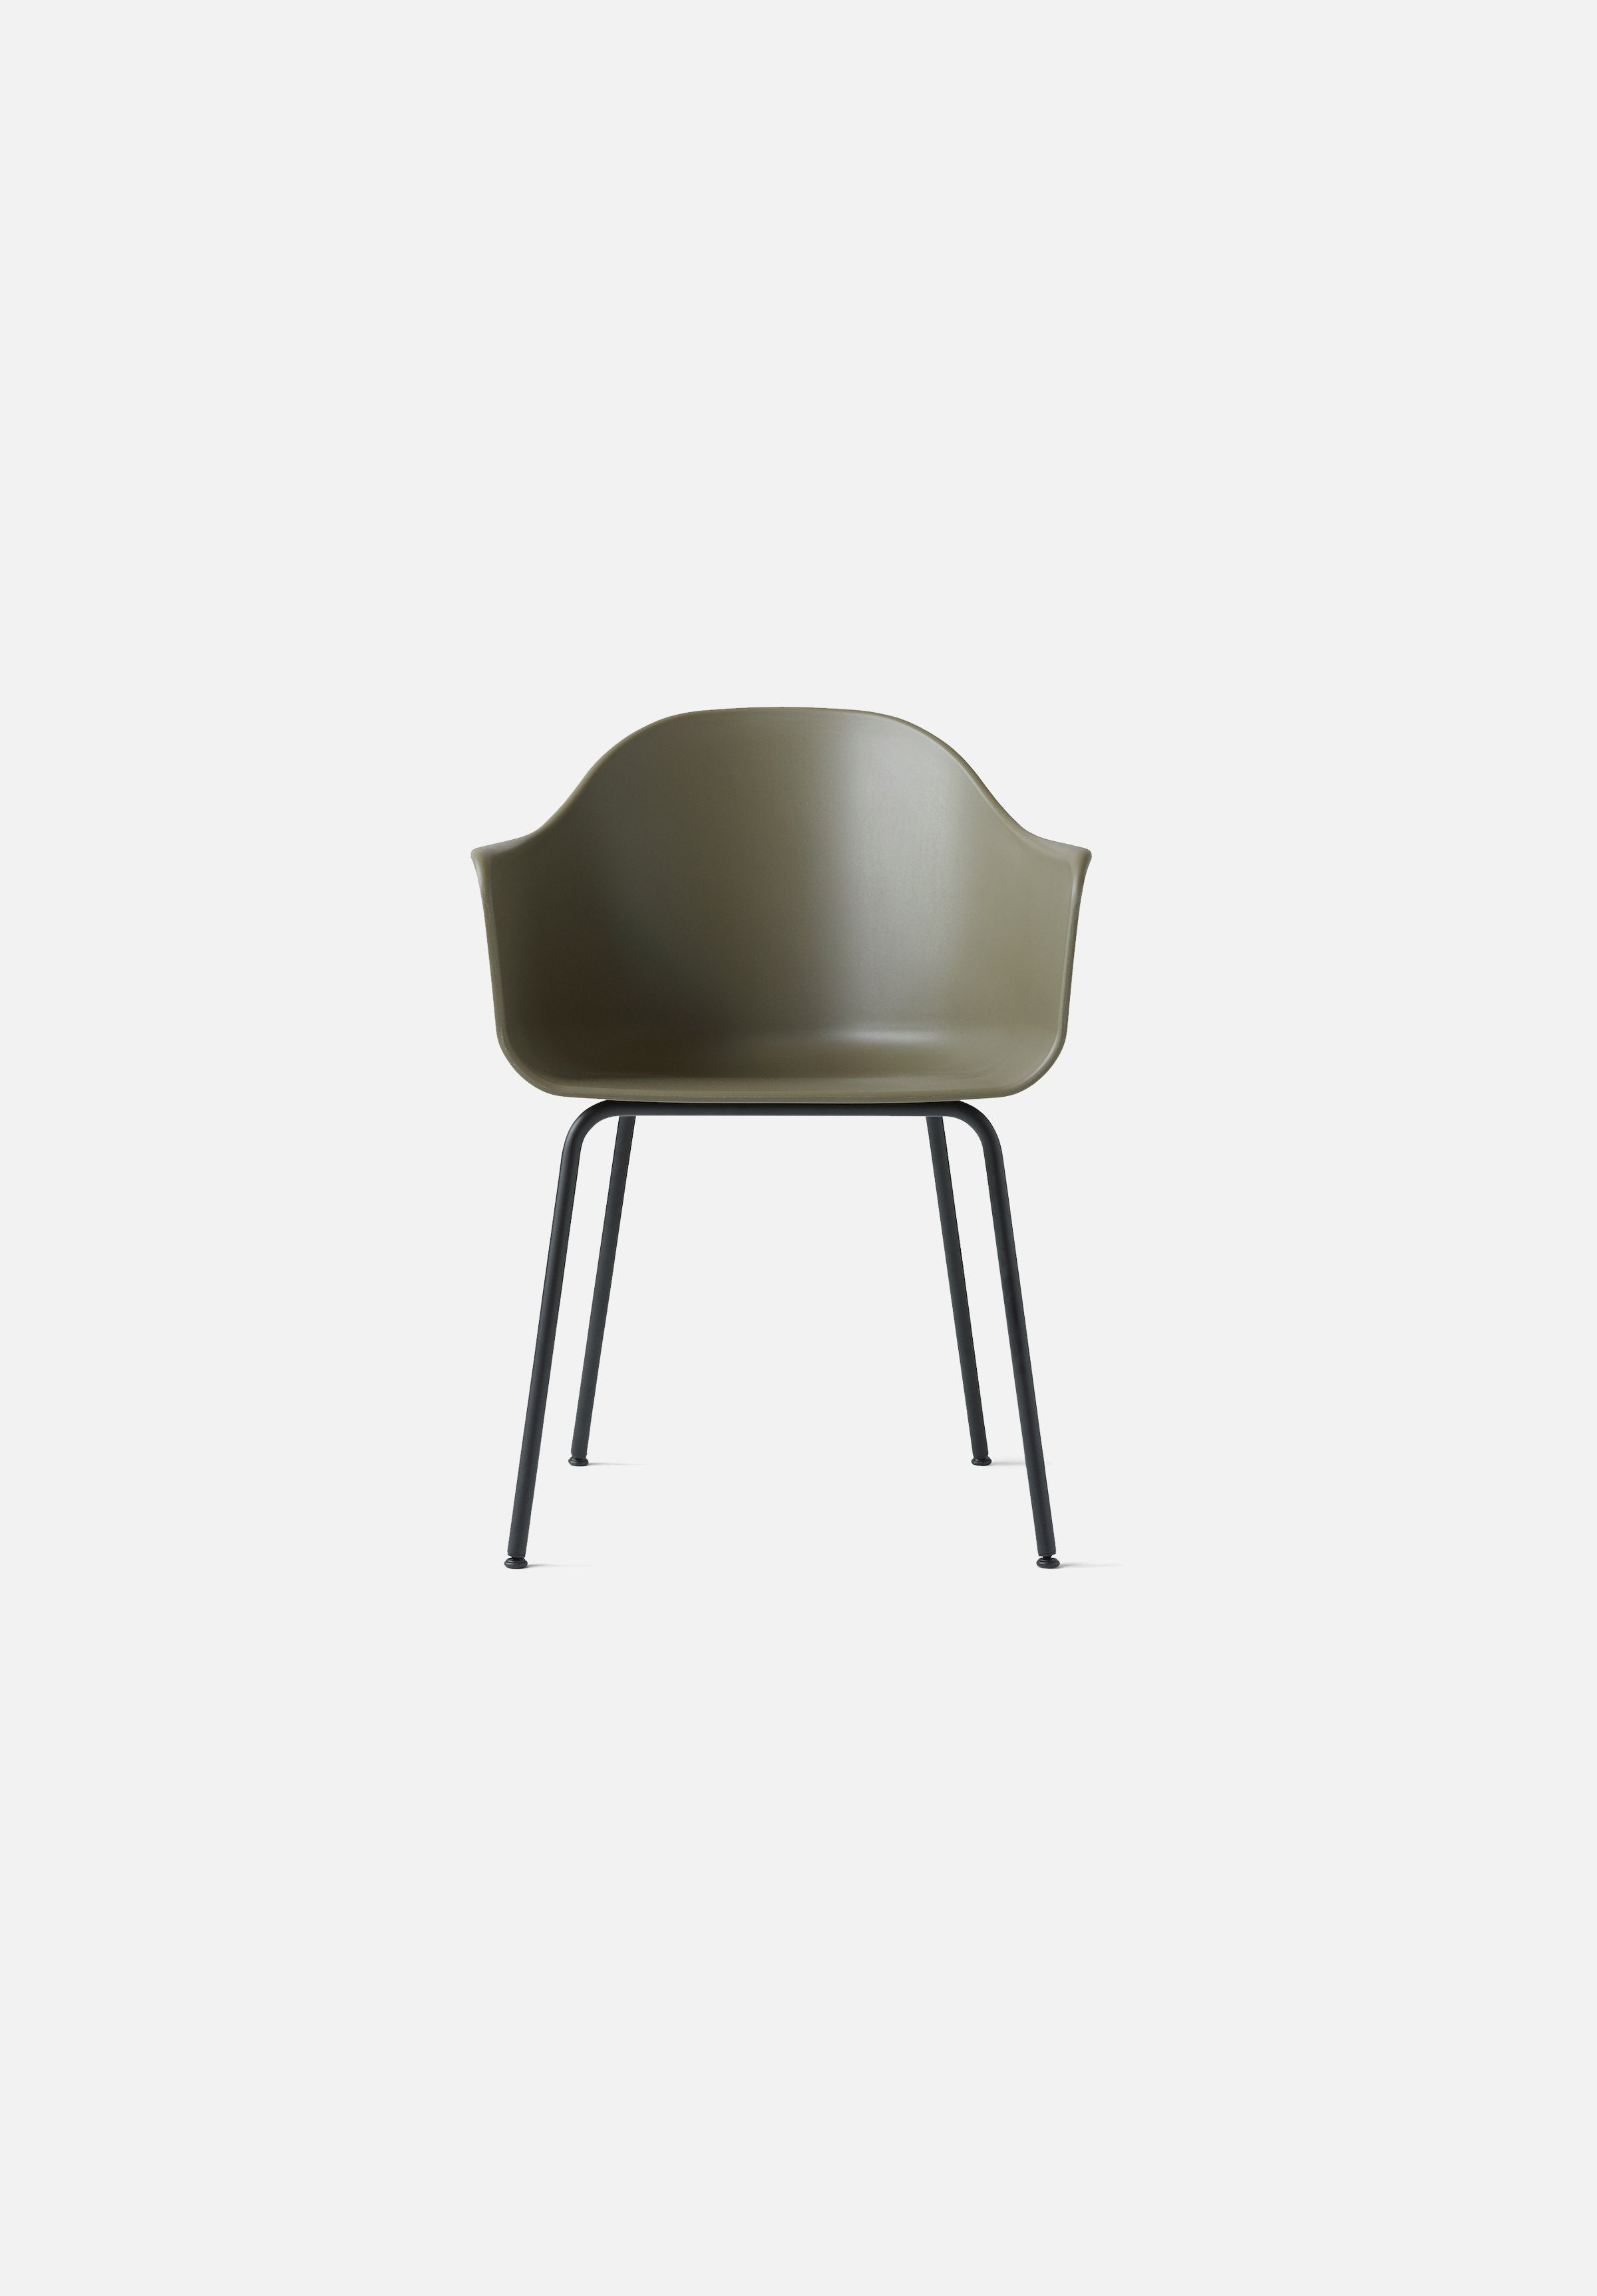 Harbour Chair - Steel Base-Norm Architects-Menu-olive-Black Steel-danish-interior-furniture-denmark-Average-design-toronto-canada